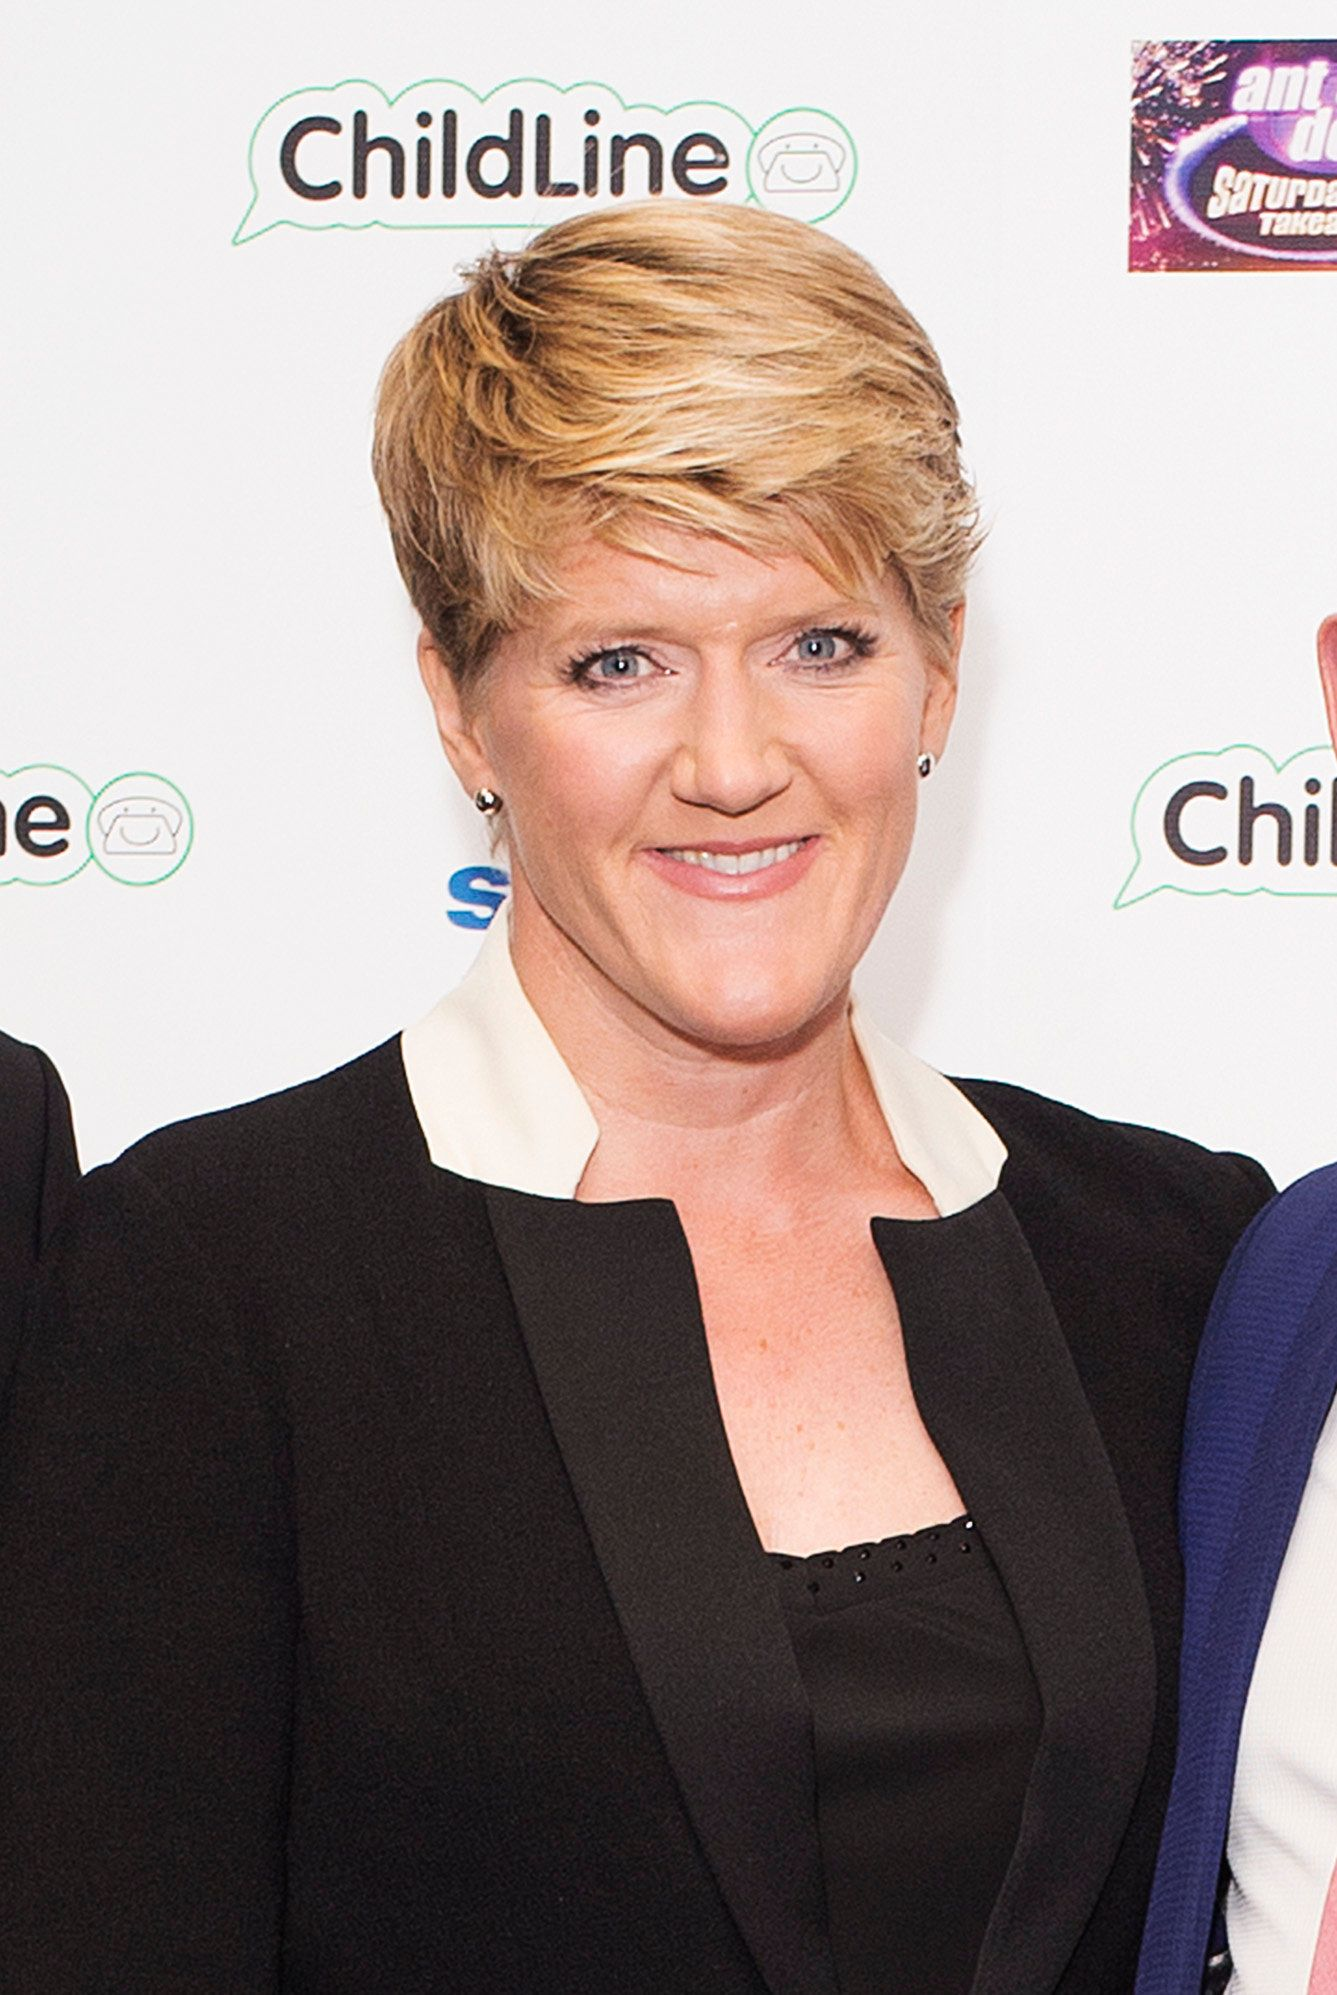 WISE WORDS: Clare Balding On The Art Of Saying